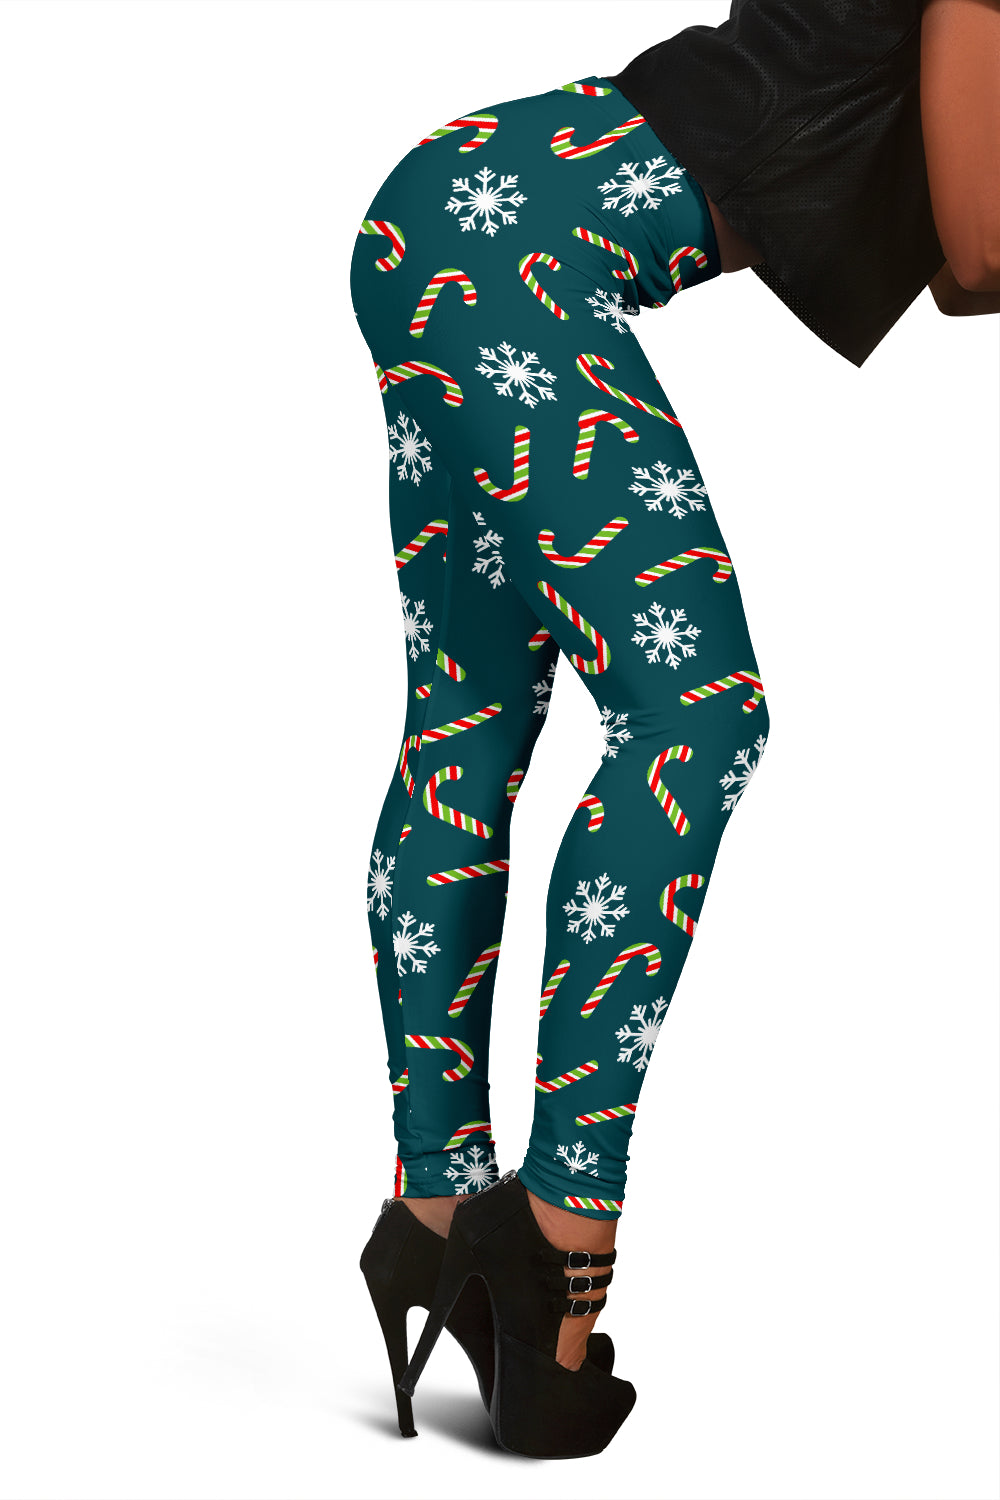 Teal Christmas Leggings For Women With Candy Cains & Snowflakes